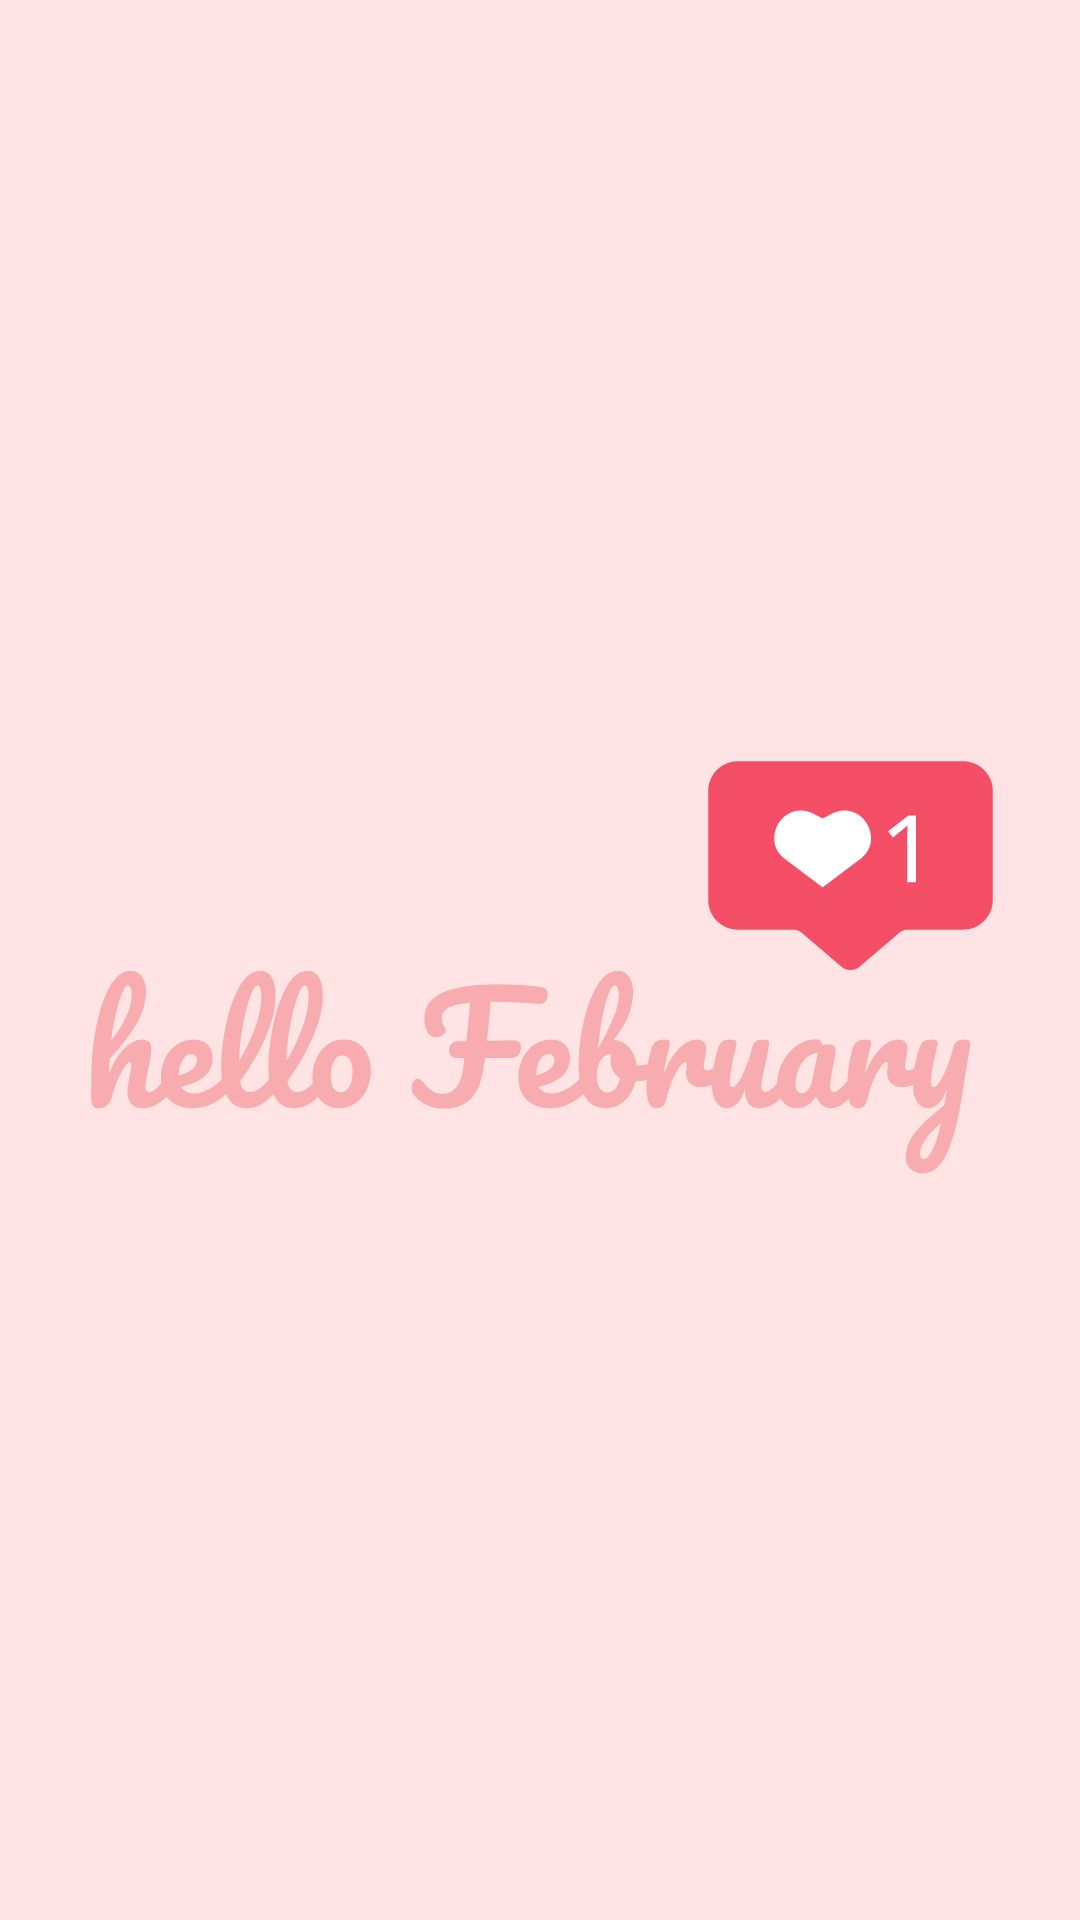 Hello February Valentines Day theme wallpaper available for 1080x1920